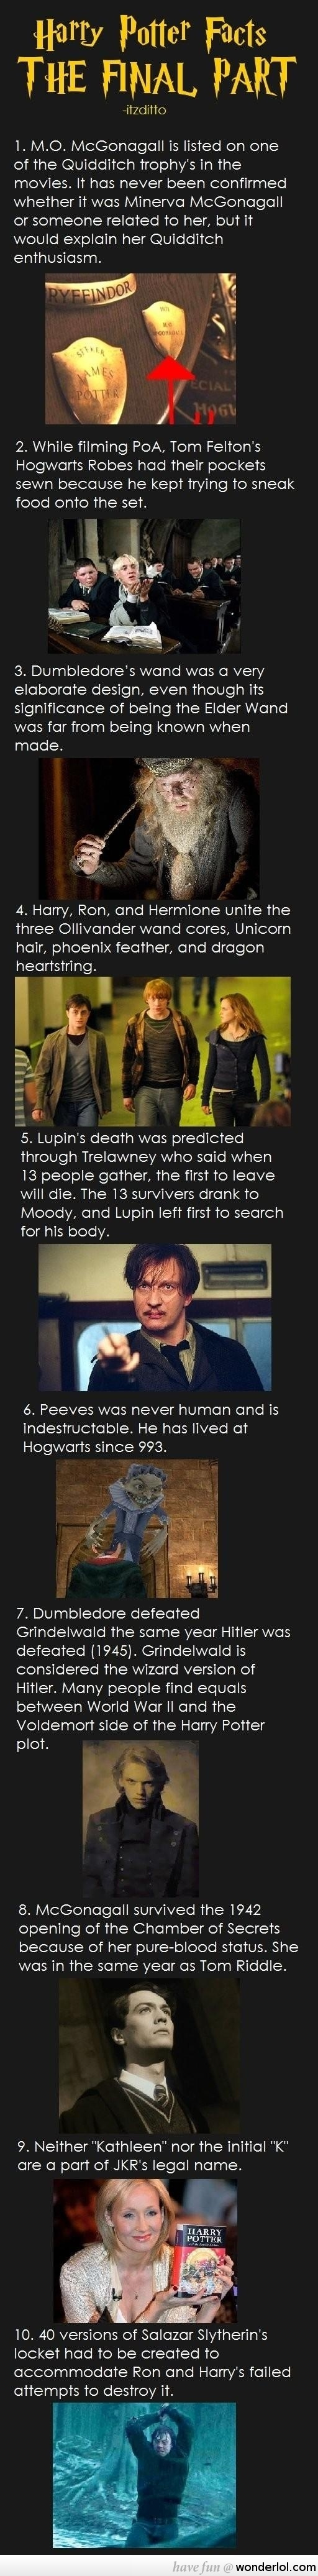 Facts You Didn't Know About Harry Potter /Part 1/ hmmm cool. And lol one reason why I love Tom Felton!